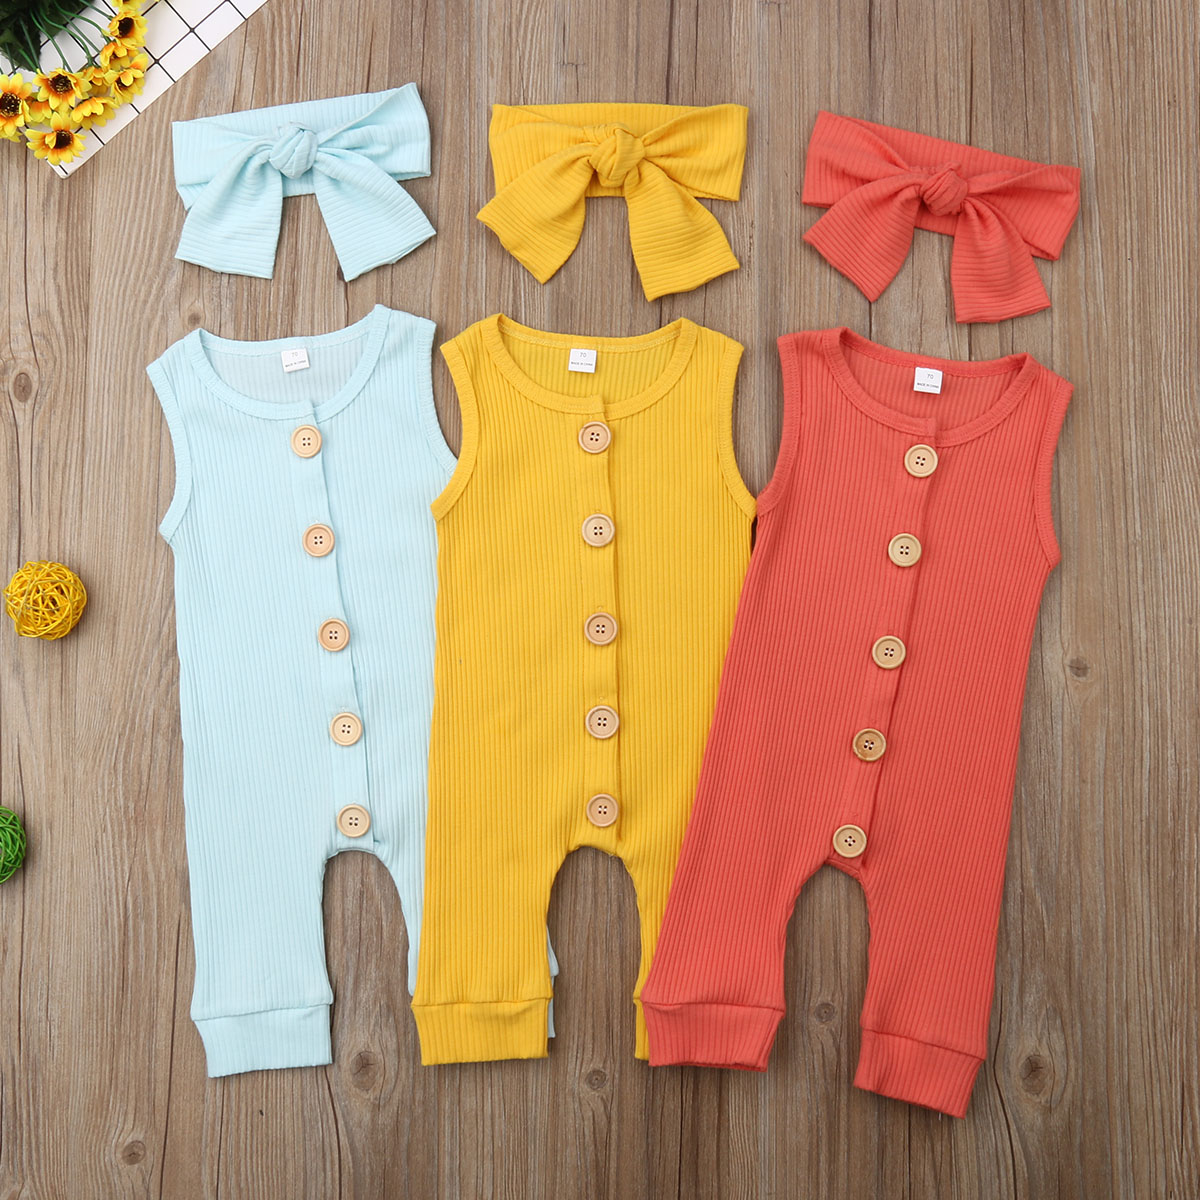 <font><b>Newborn</b></font> Infant <font><b>Baby</b></font> <font><b>Girl</b></font> Boy 2pcs Outfit Romper Jumpsuit Bodysuit <font><b>Clothes</b></font> Set <font><b>Autumn</b></font> Spring Headband 0-18M 2pcs Cotton image